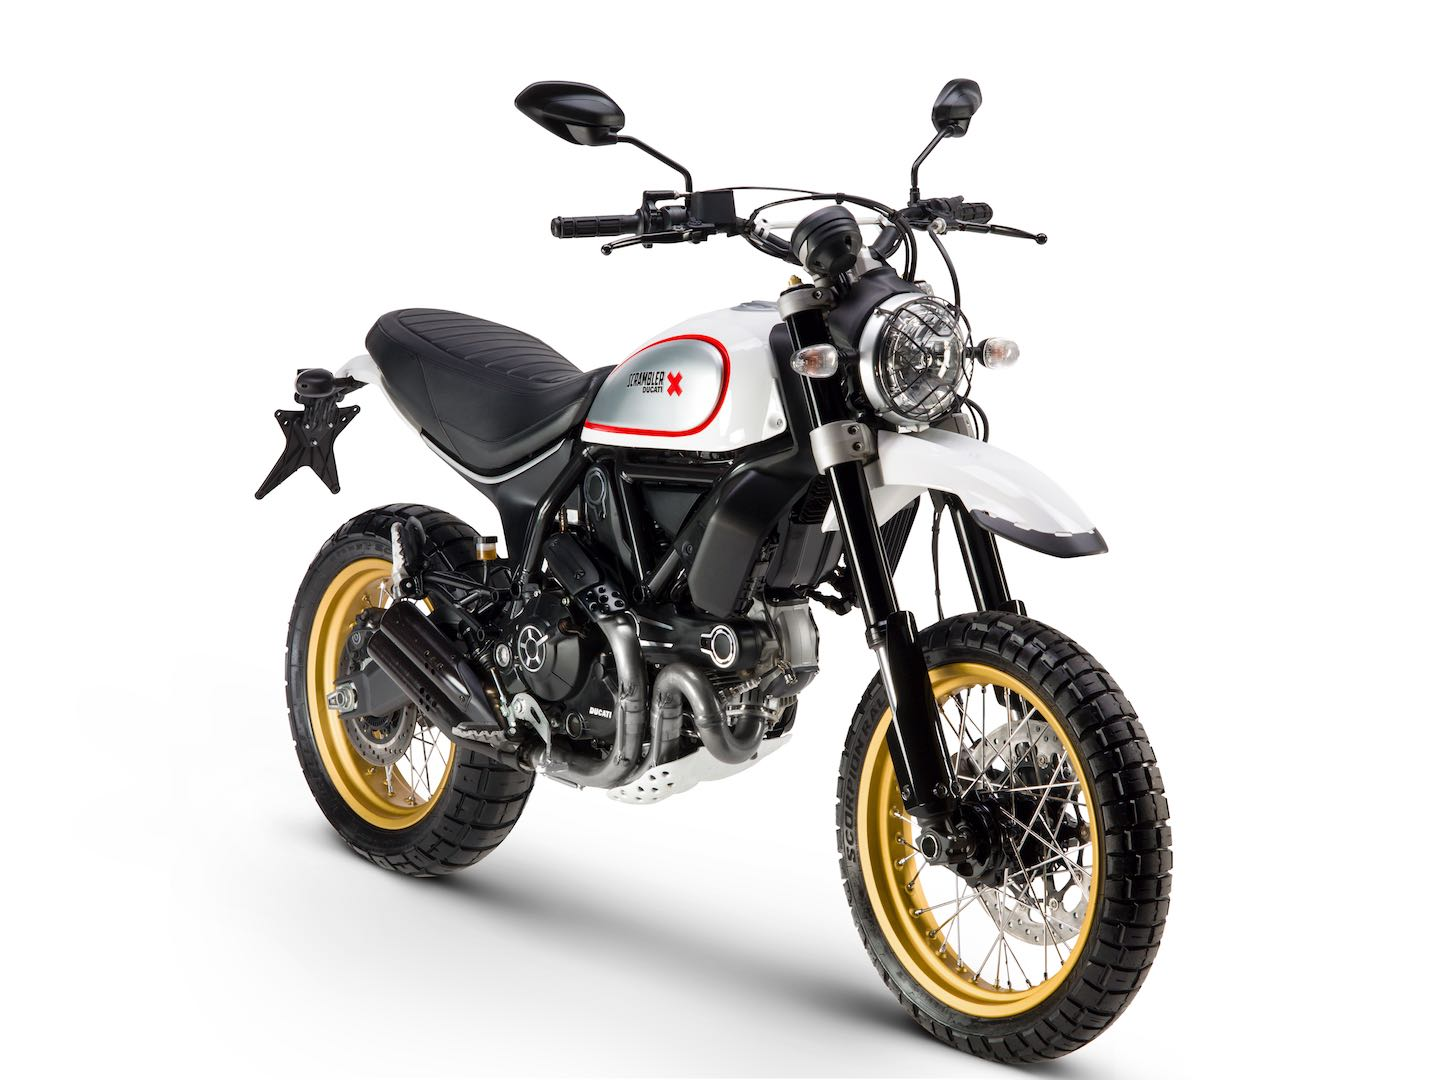 2017 Ducati Scrambler Desert Sled First Look | Fast Facts